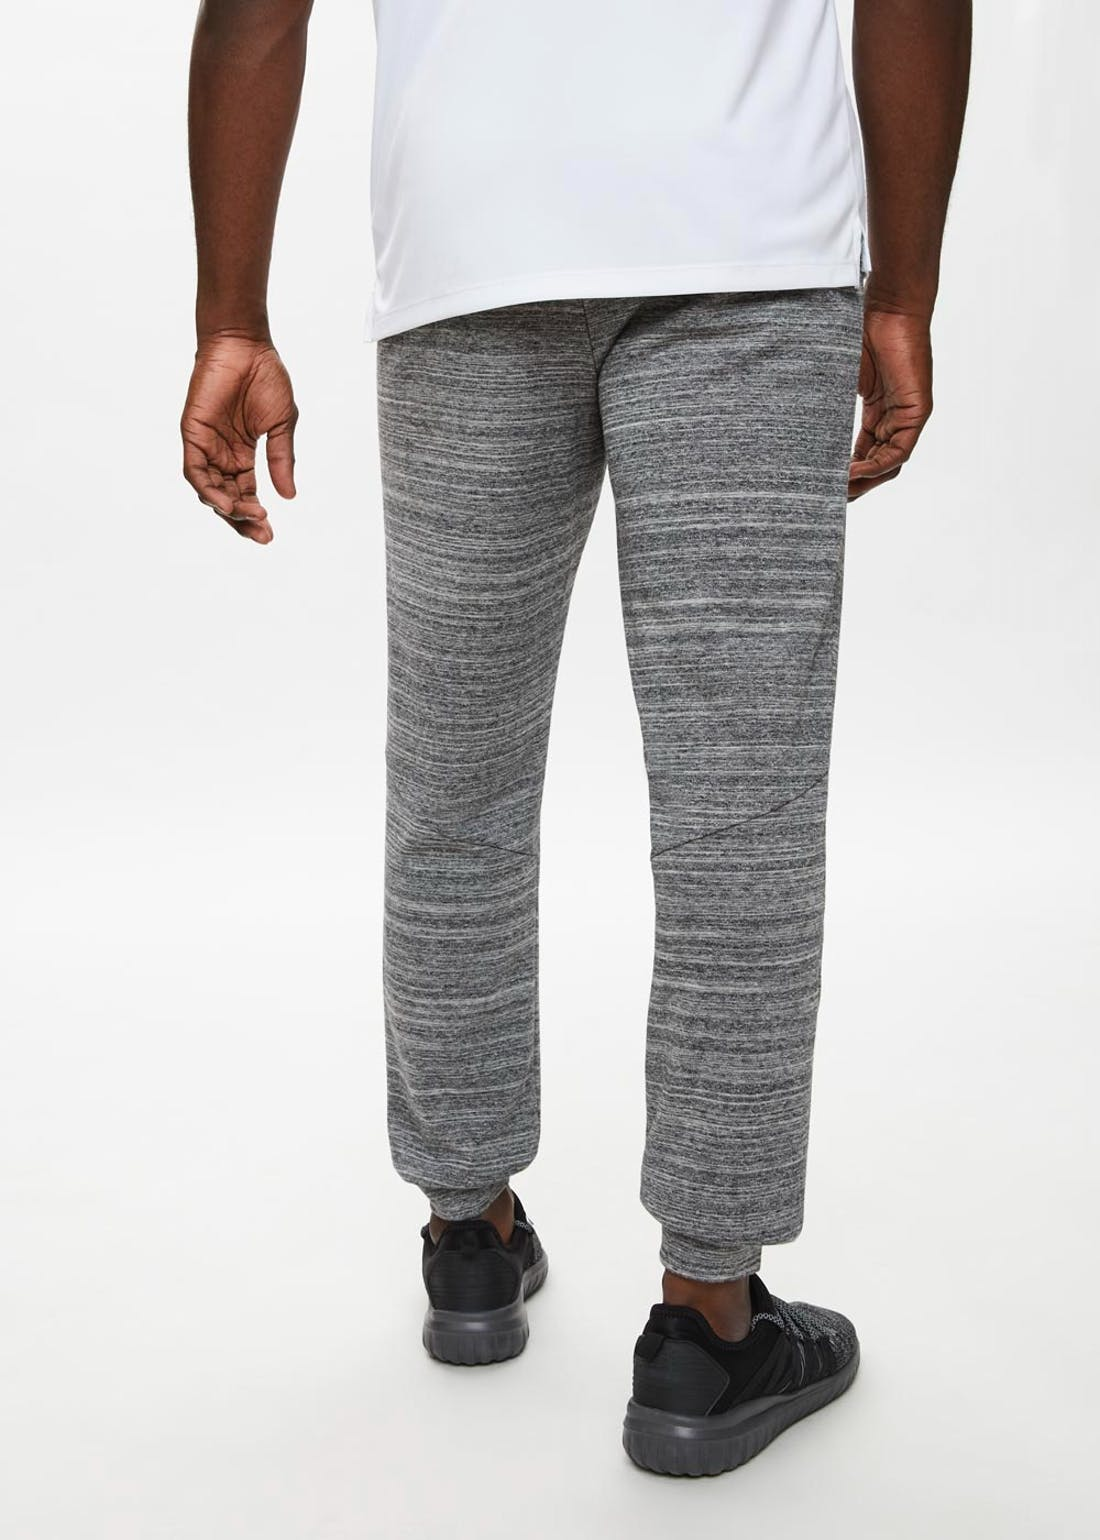 Souluxe Grey Sports Jogging Bottoms